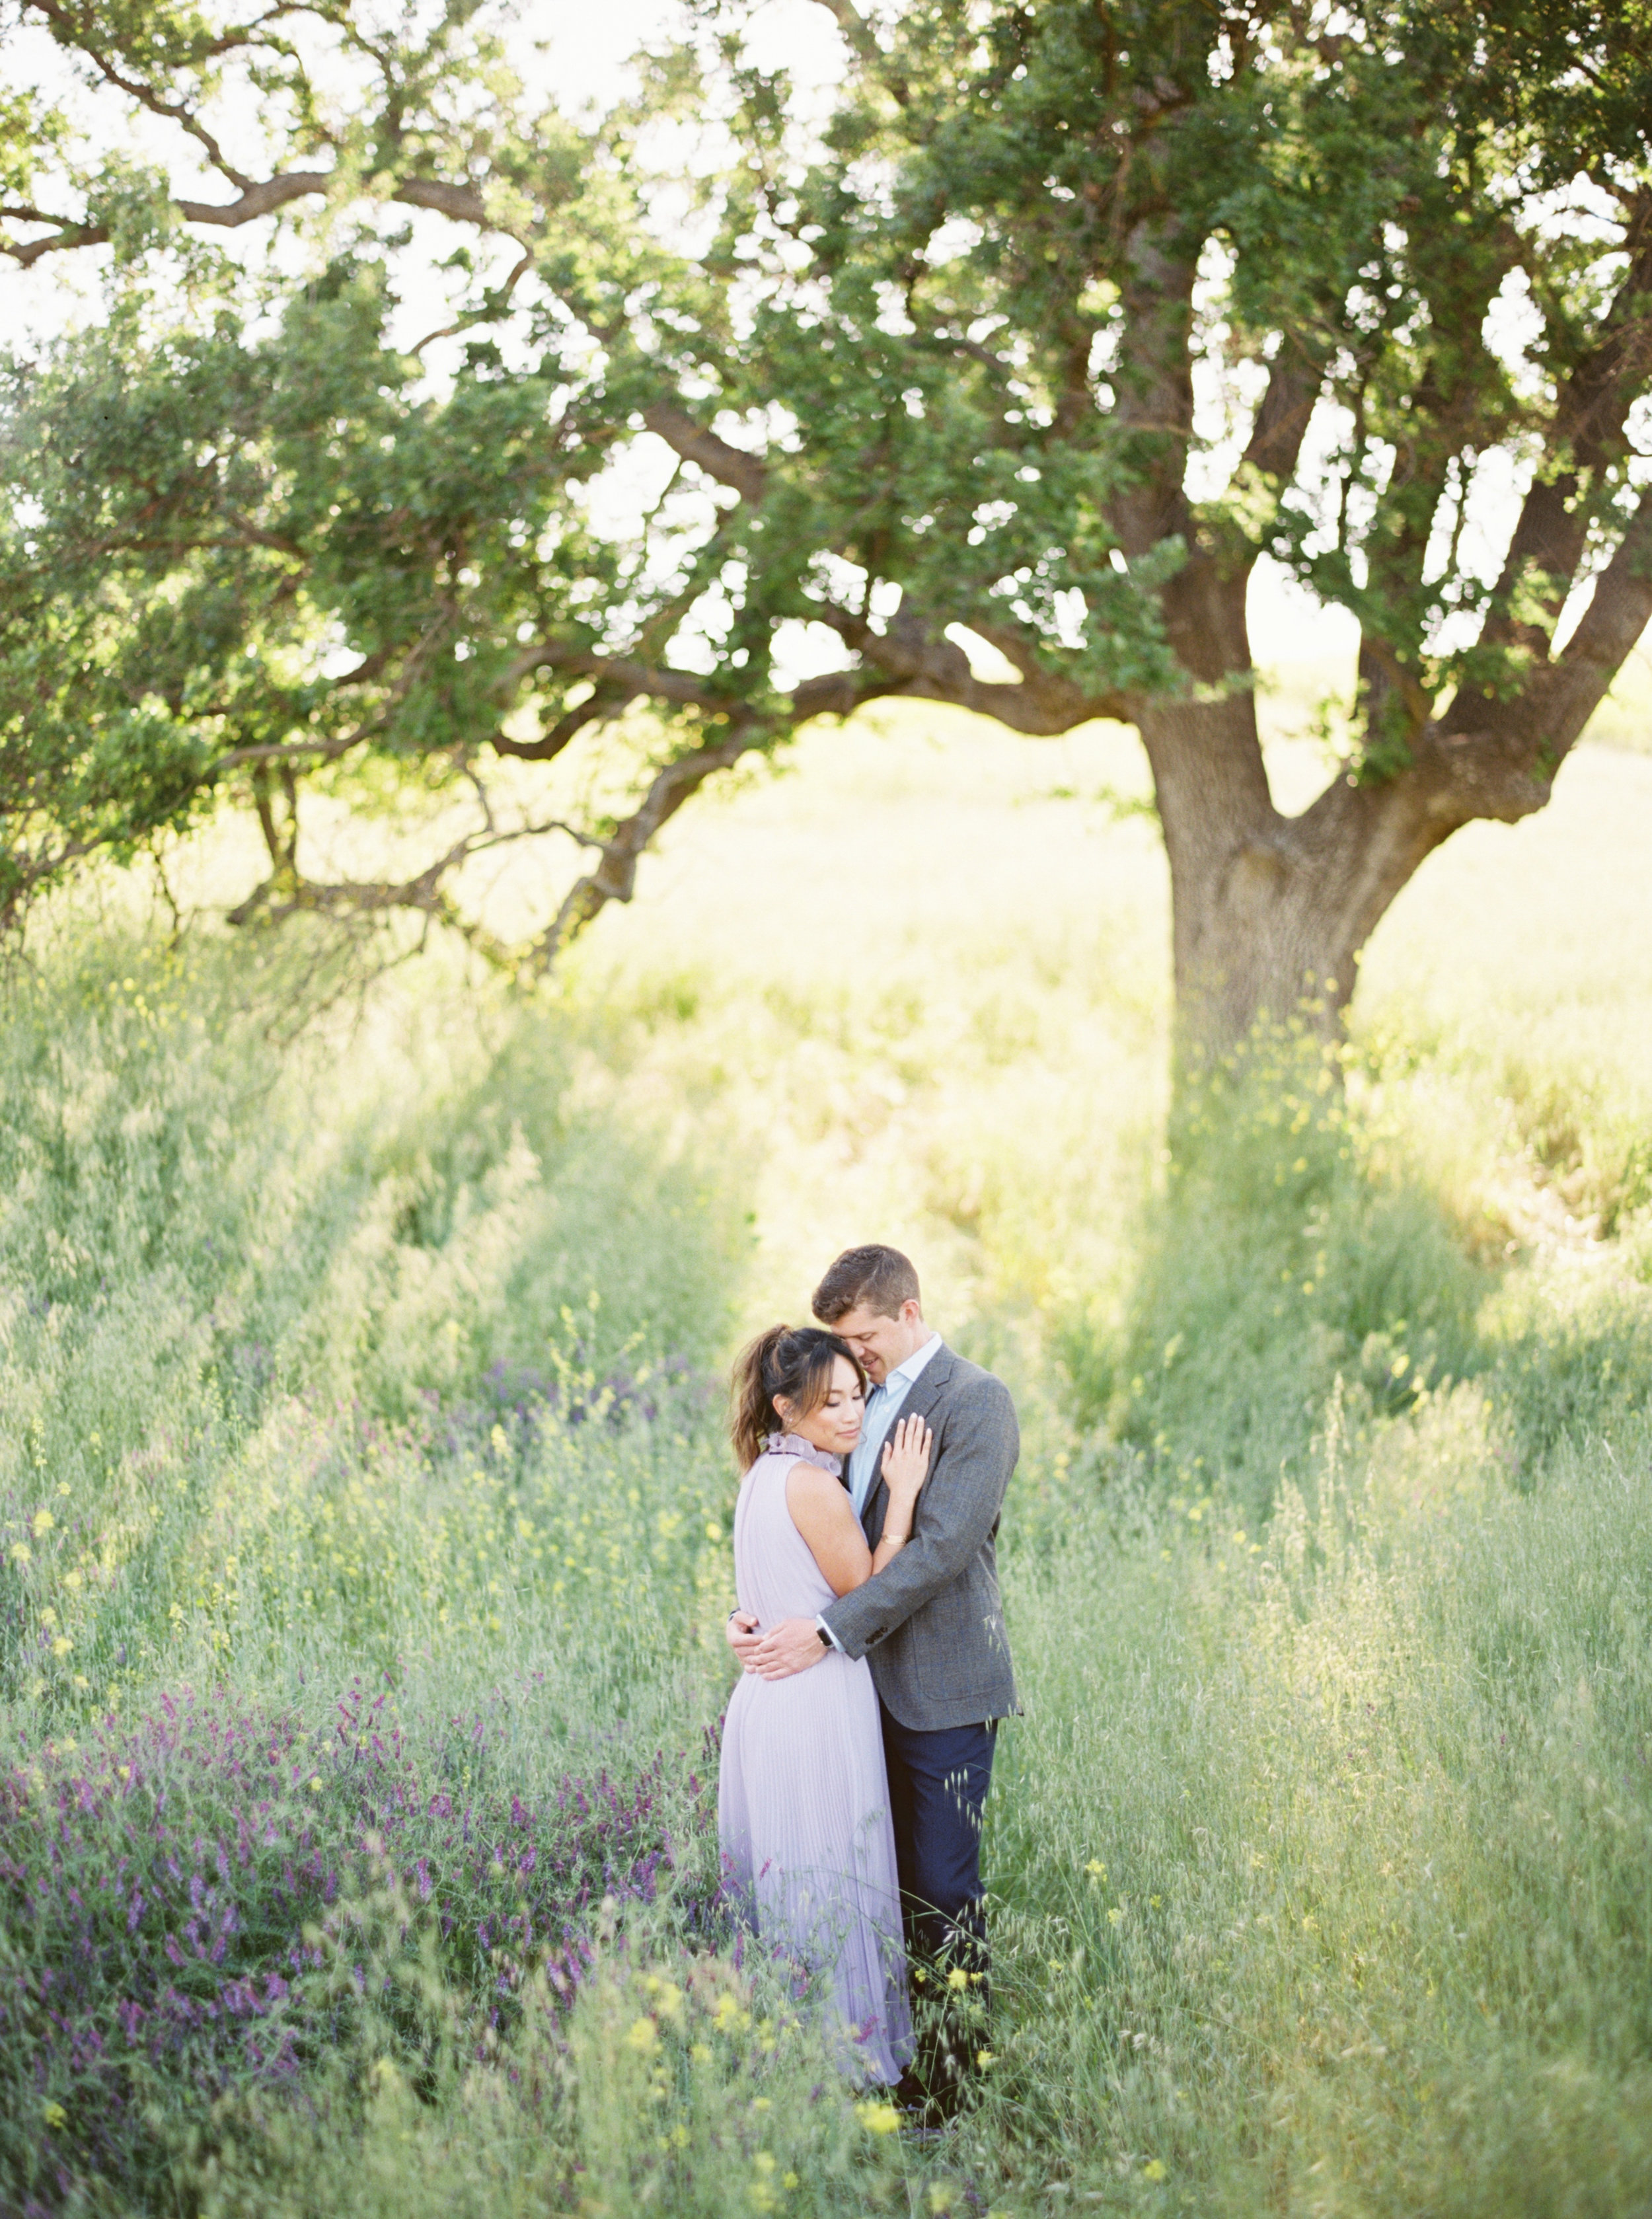 Rachel Owens - Malibu Creek Engagement- CP-57.jpg